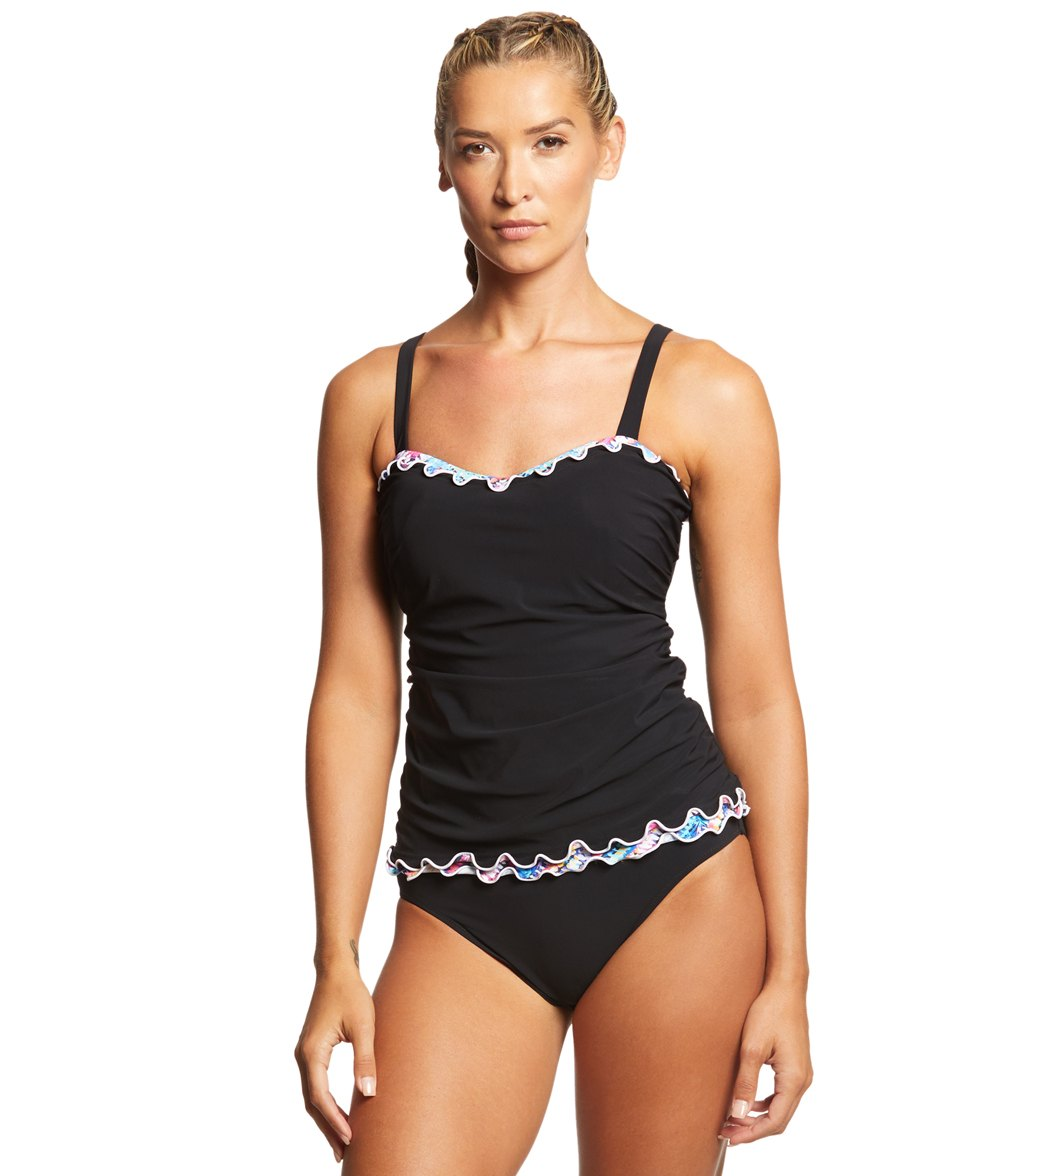 83ebcbcdfd Profile by Gottex Fantasia Tankini Top (D-Cup) at SwimOutlet.com - Free  Shipping